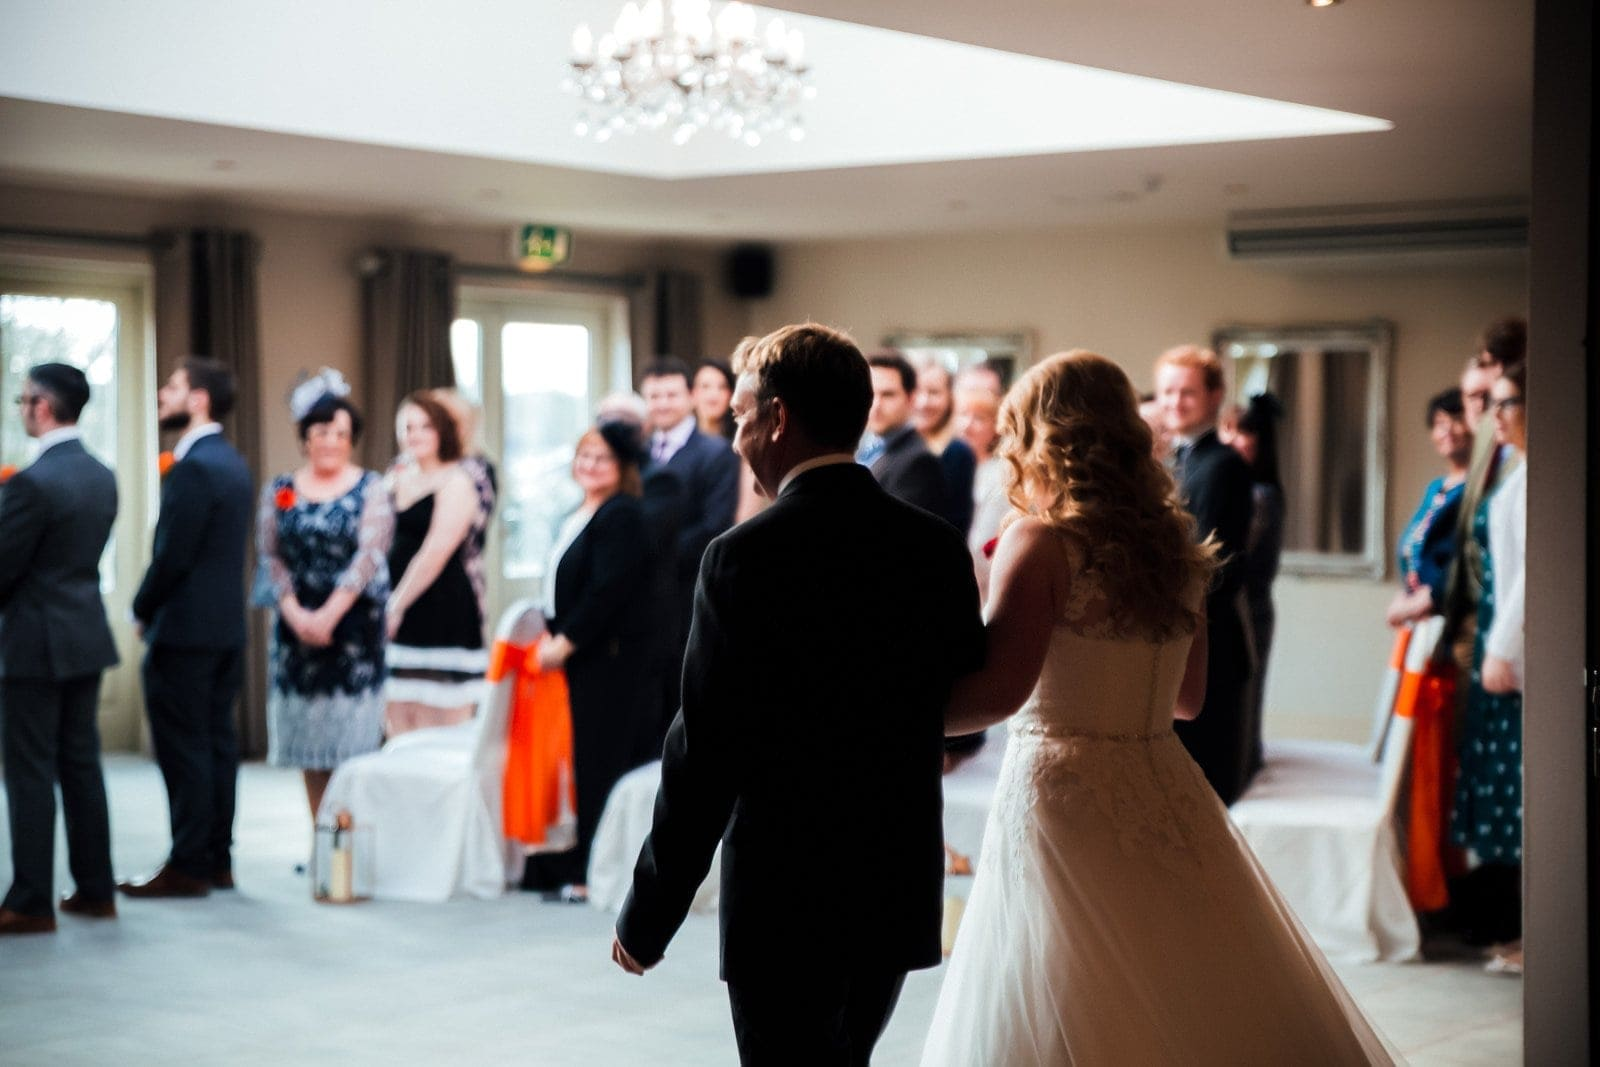 Wedding Day at the Peak Edge Hotel, Chesterfield